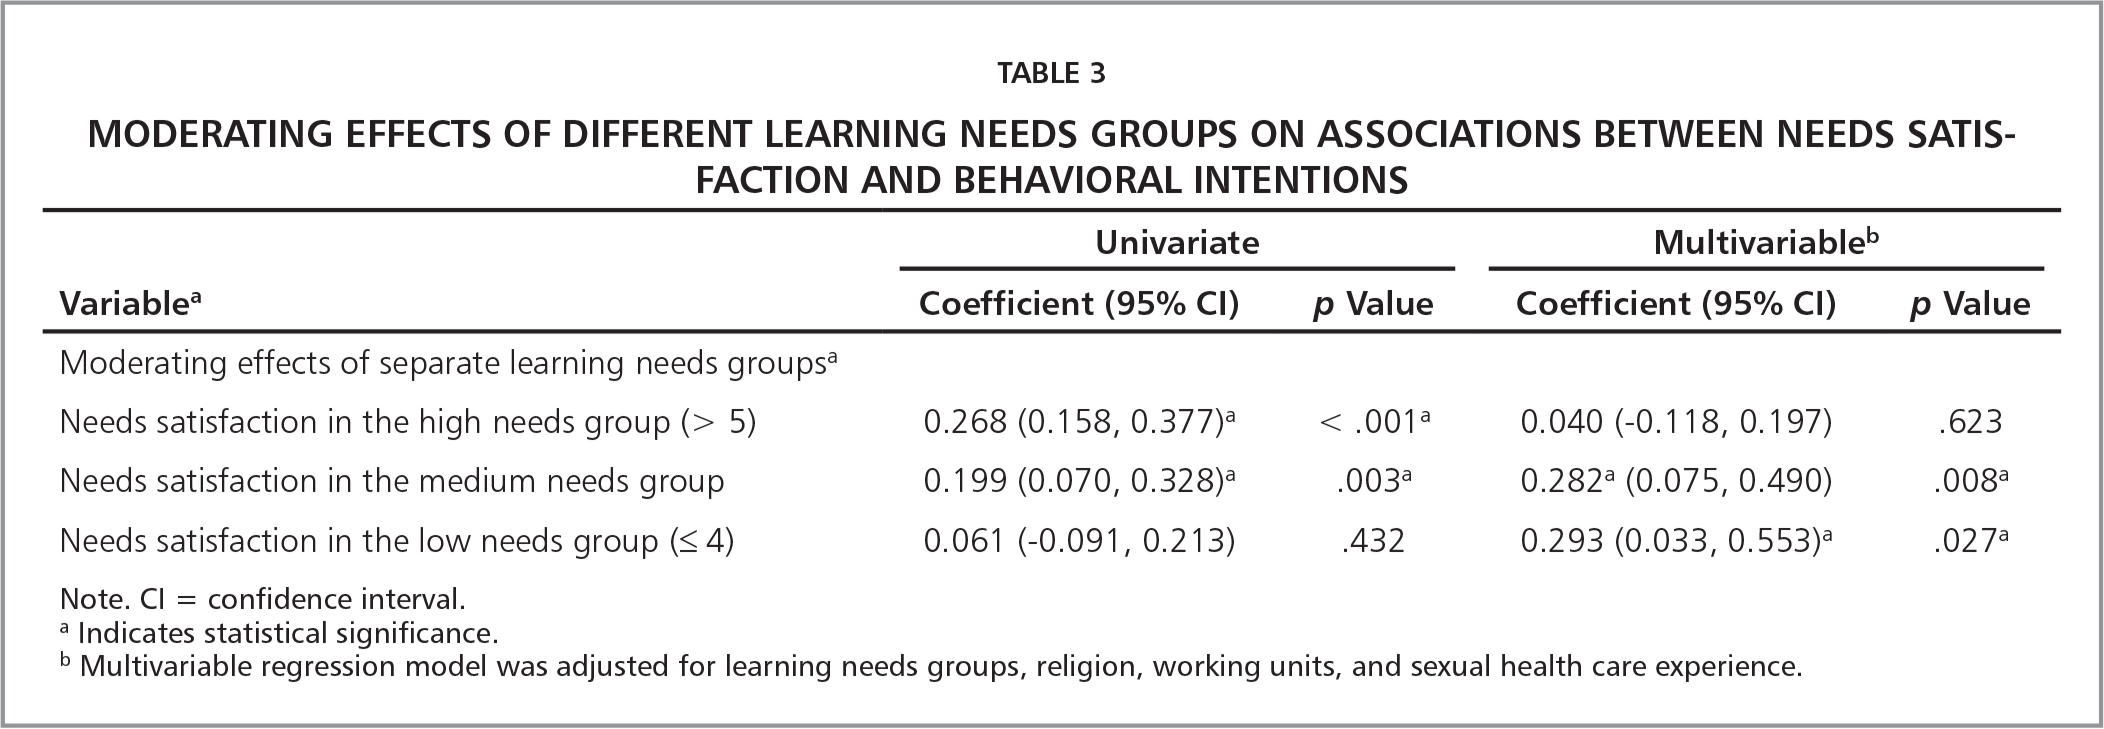 Moderating Effects of Different Learning Needs Groups on Associations Between Needs Satisfaction and Behavioral Intentions